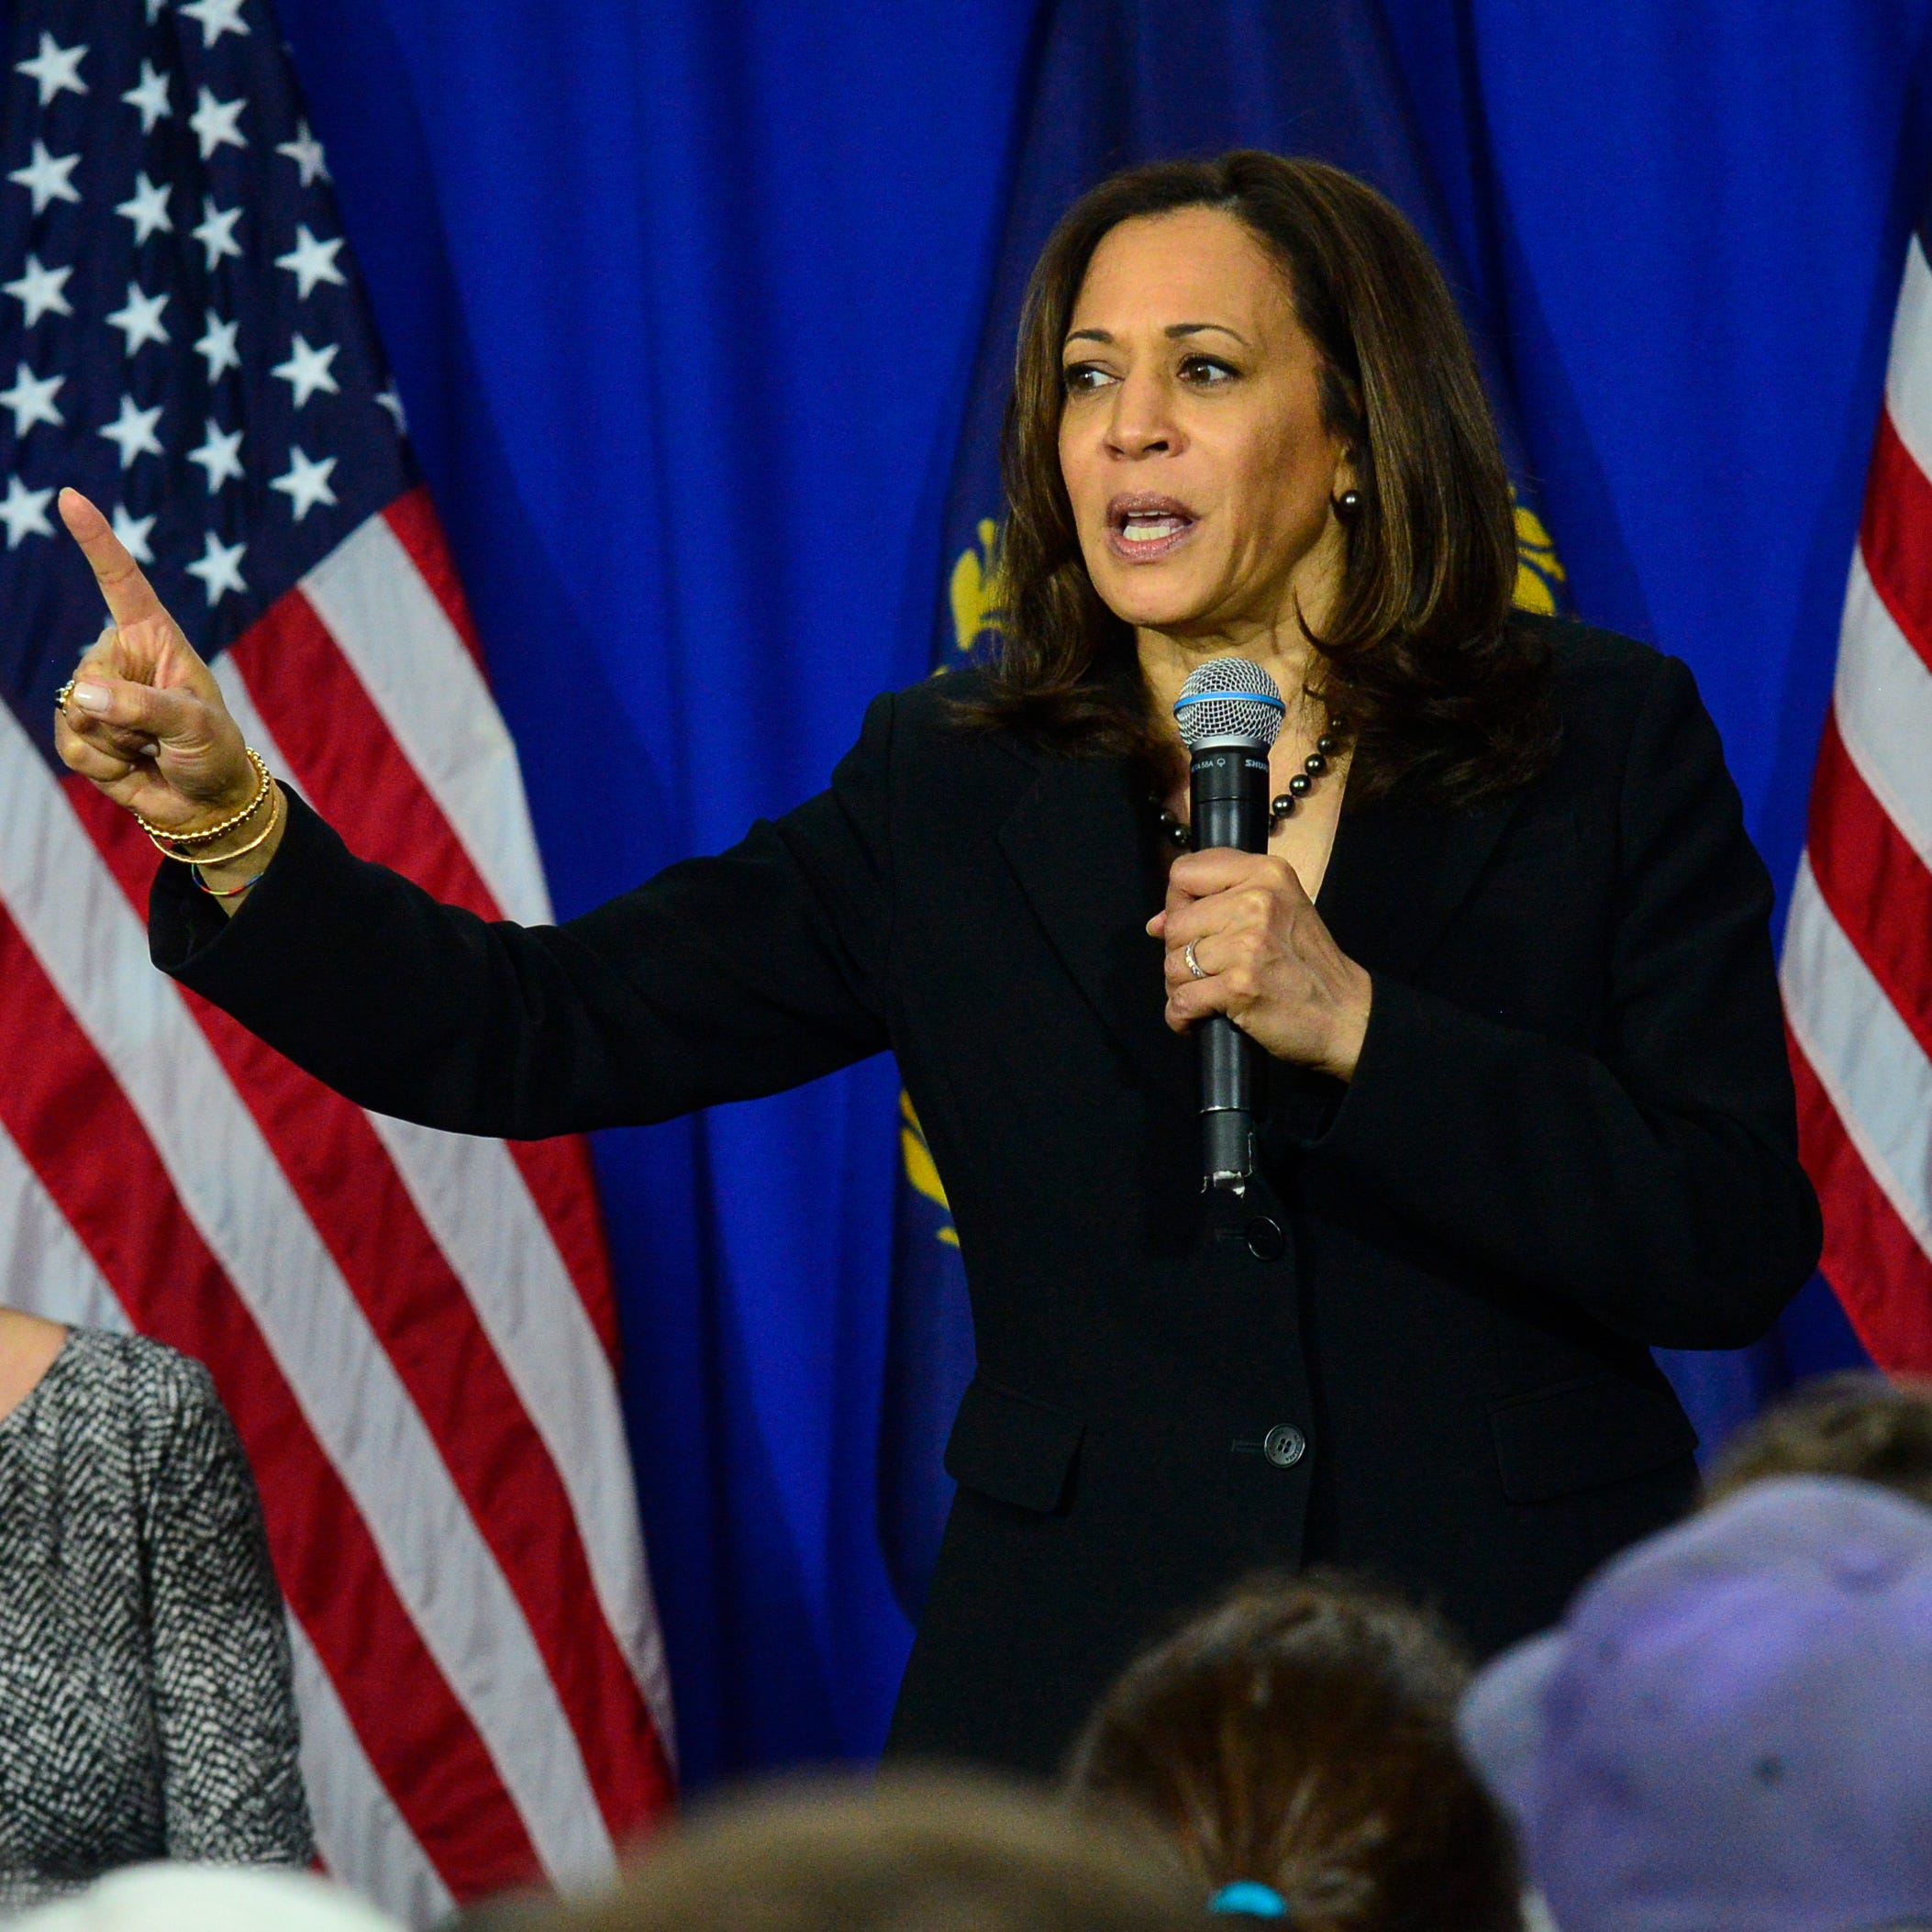 Kamala Harris says she 'absolutely' supports a third gender option on federal IDs